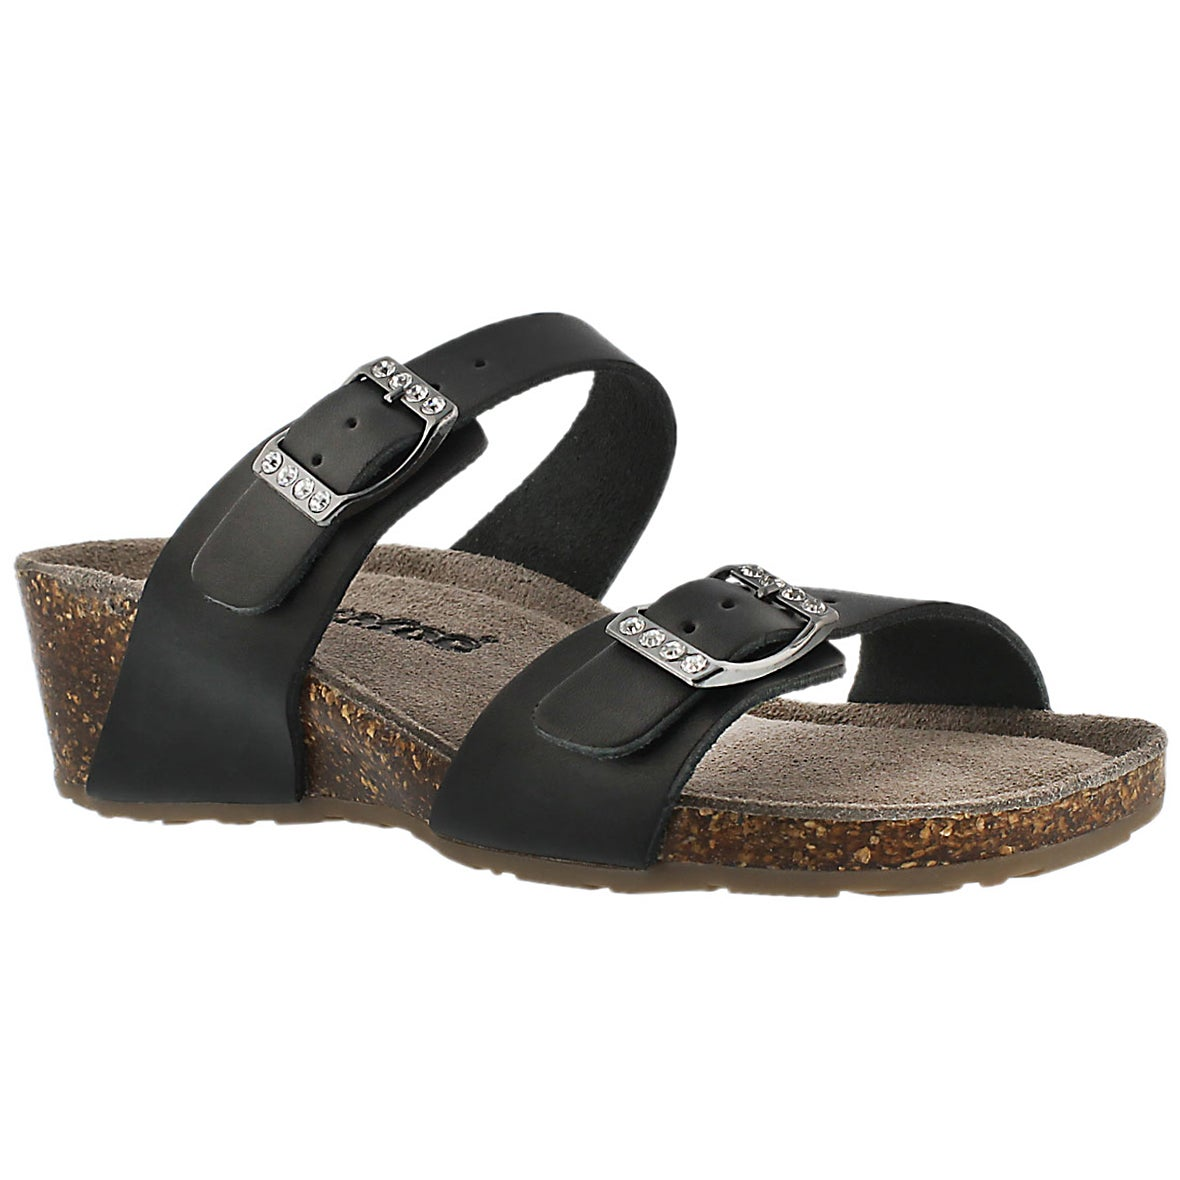 Women's ASHLYNN 2 black memory foam sandals